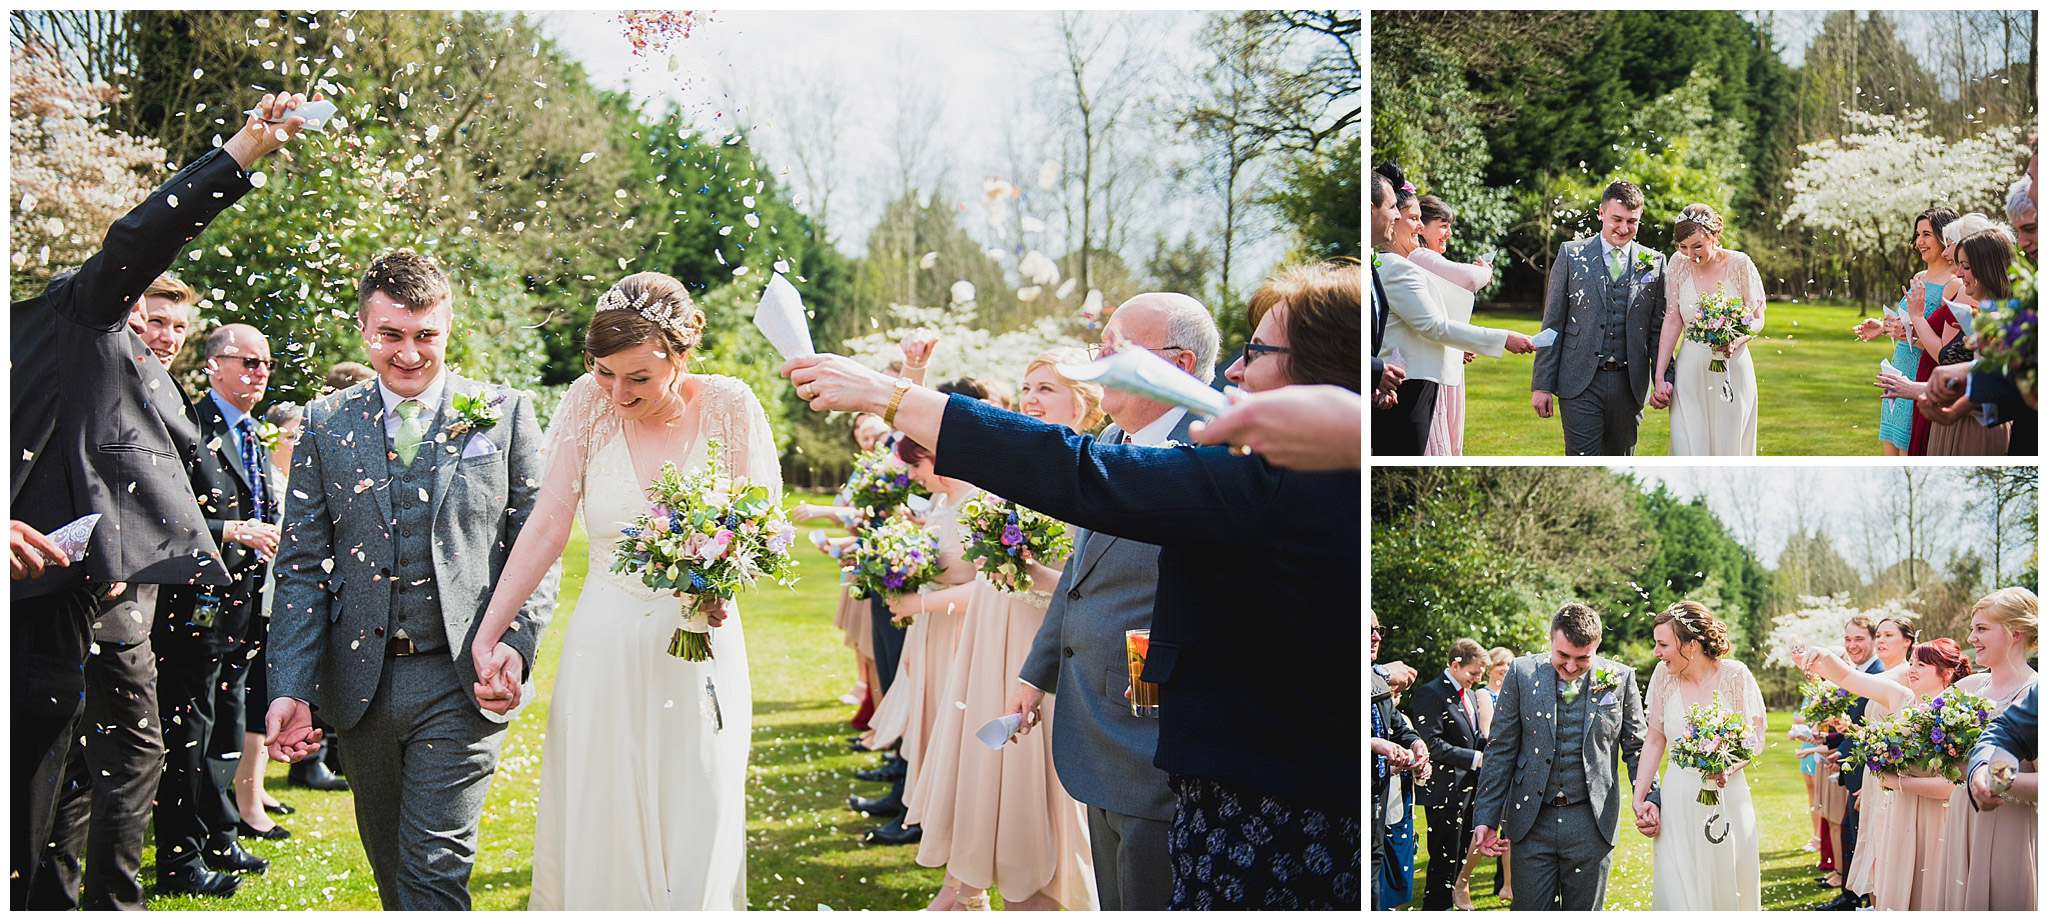 Sarah-&-Dan-The-Old-Vicarage-Wedding-Venue-Dorset-Photographer-26